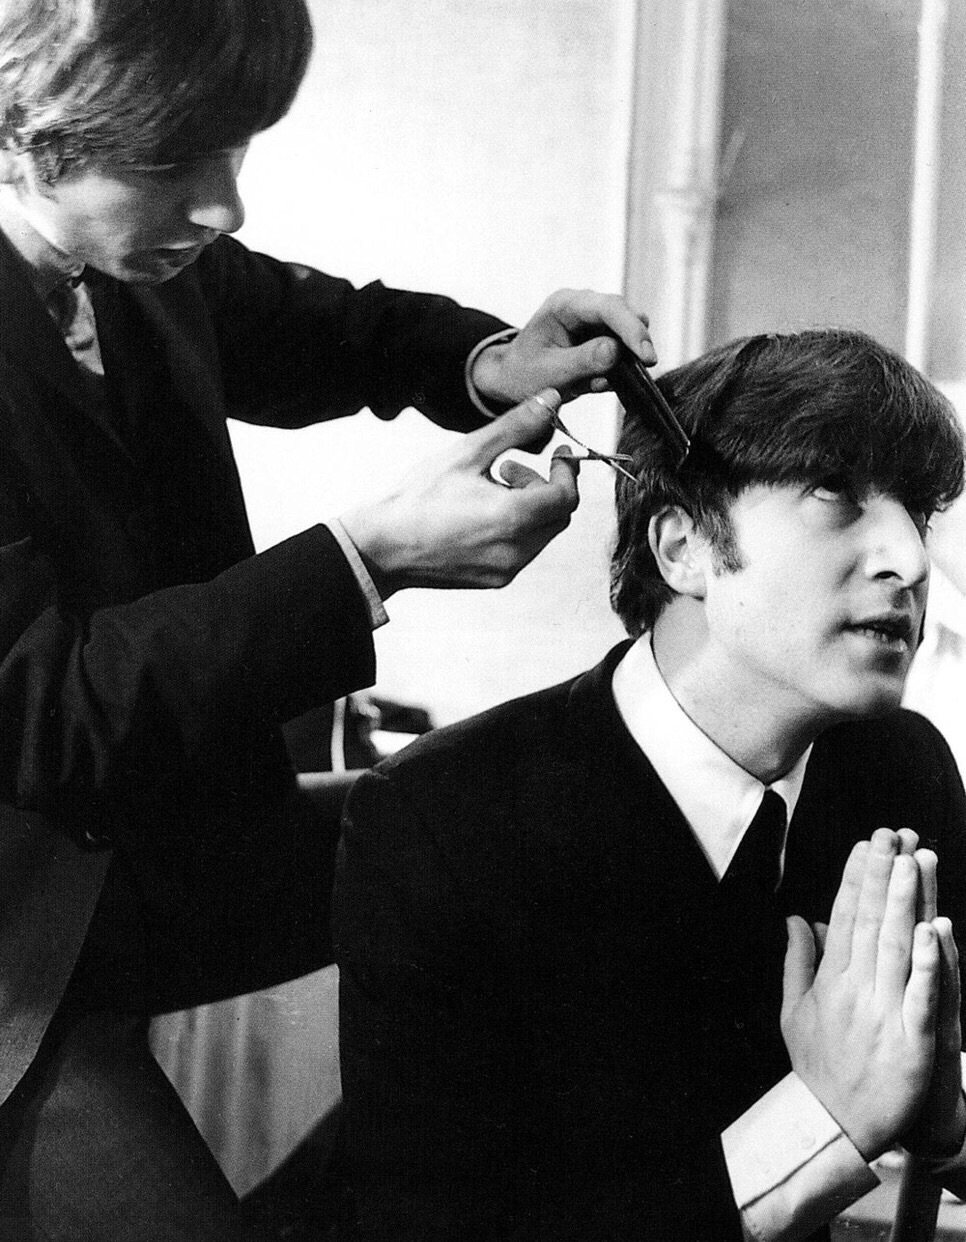 George Harrison cutting John Lennon's hair, circa 1964.